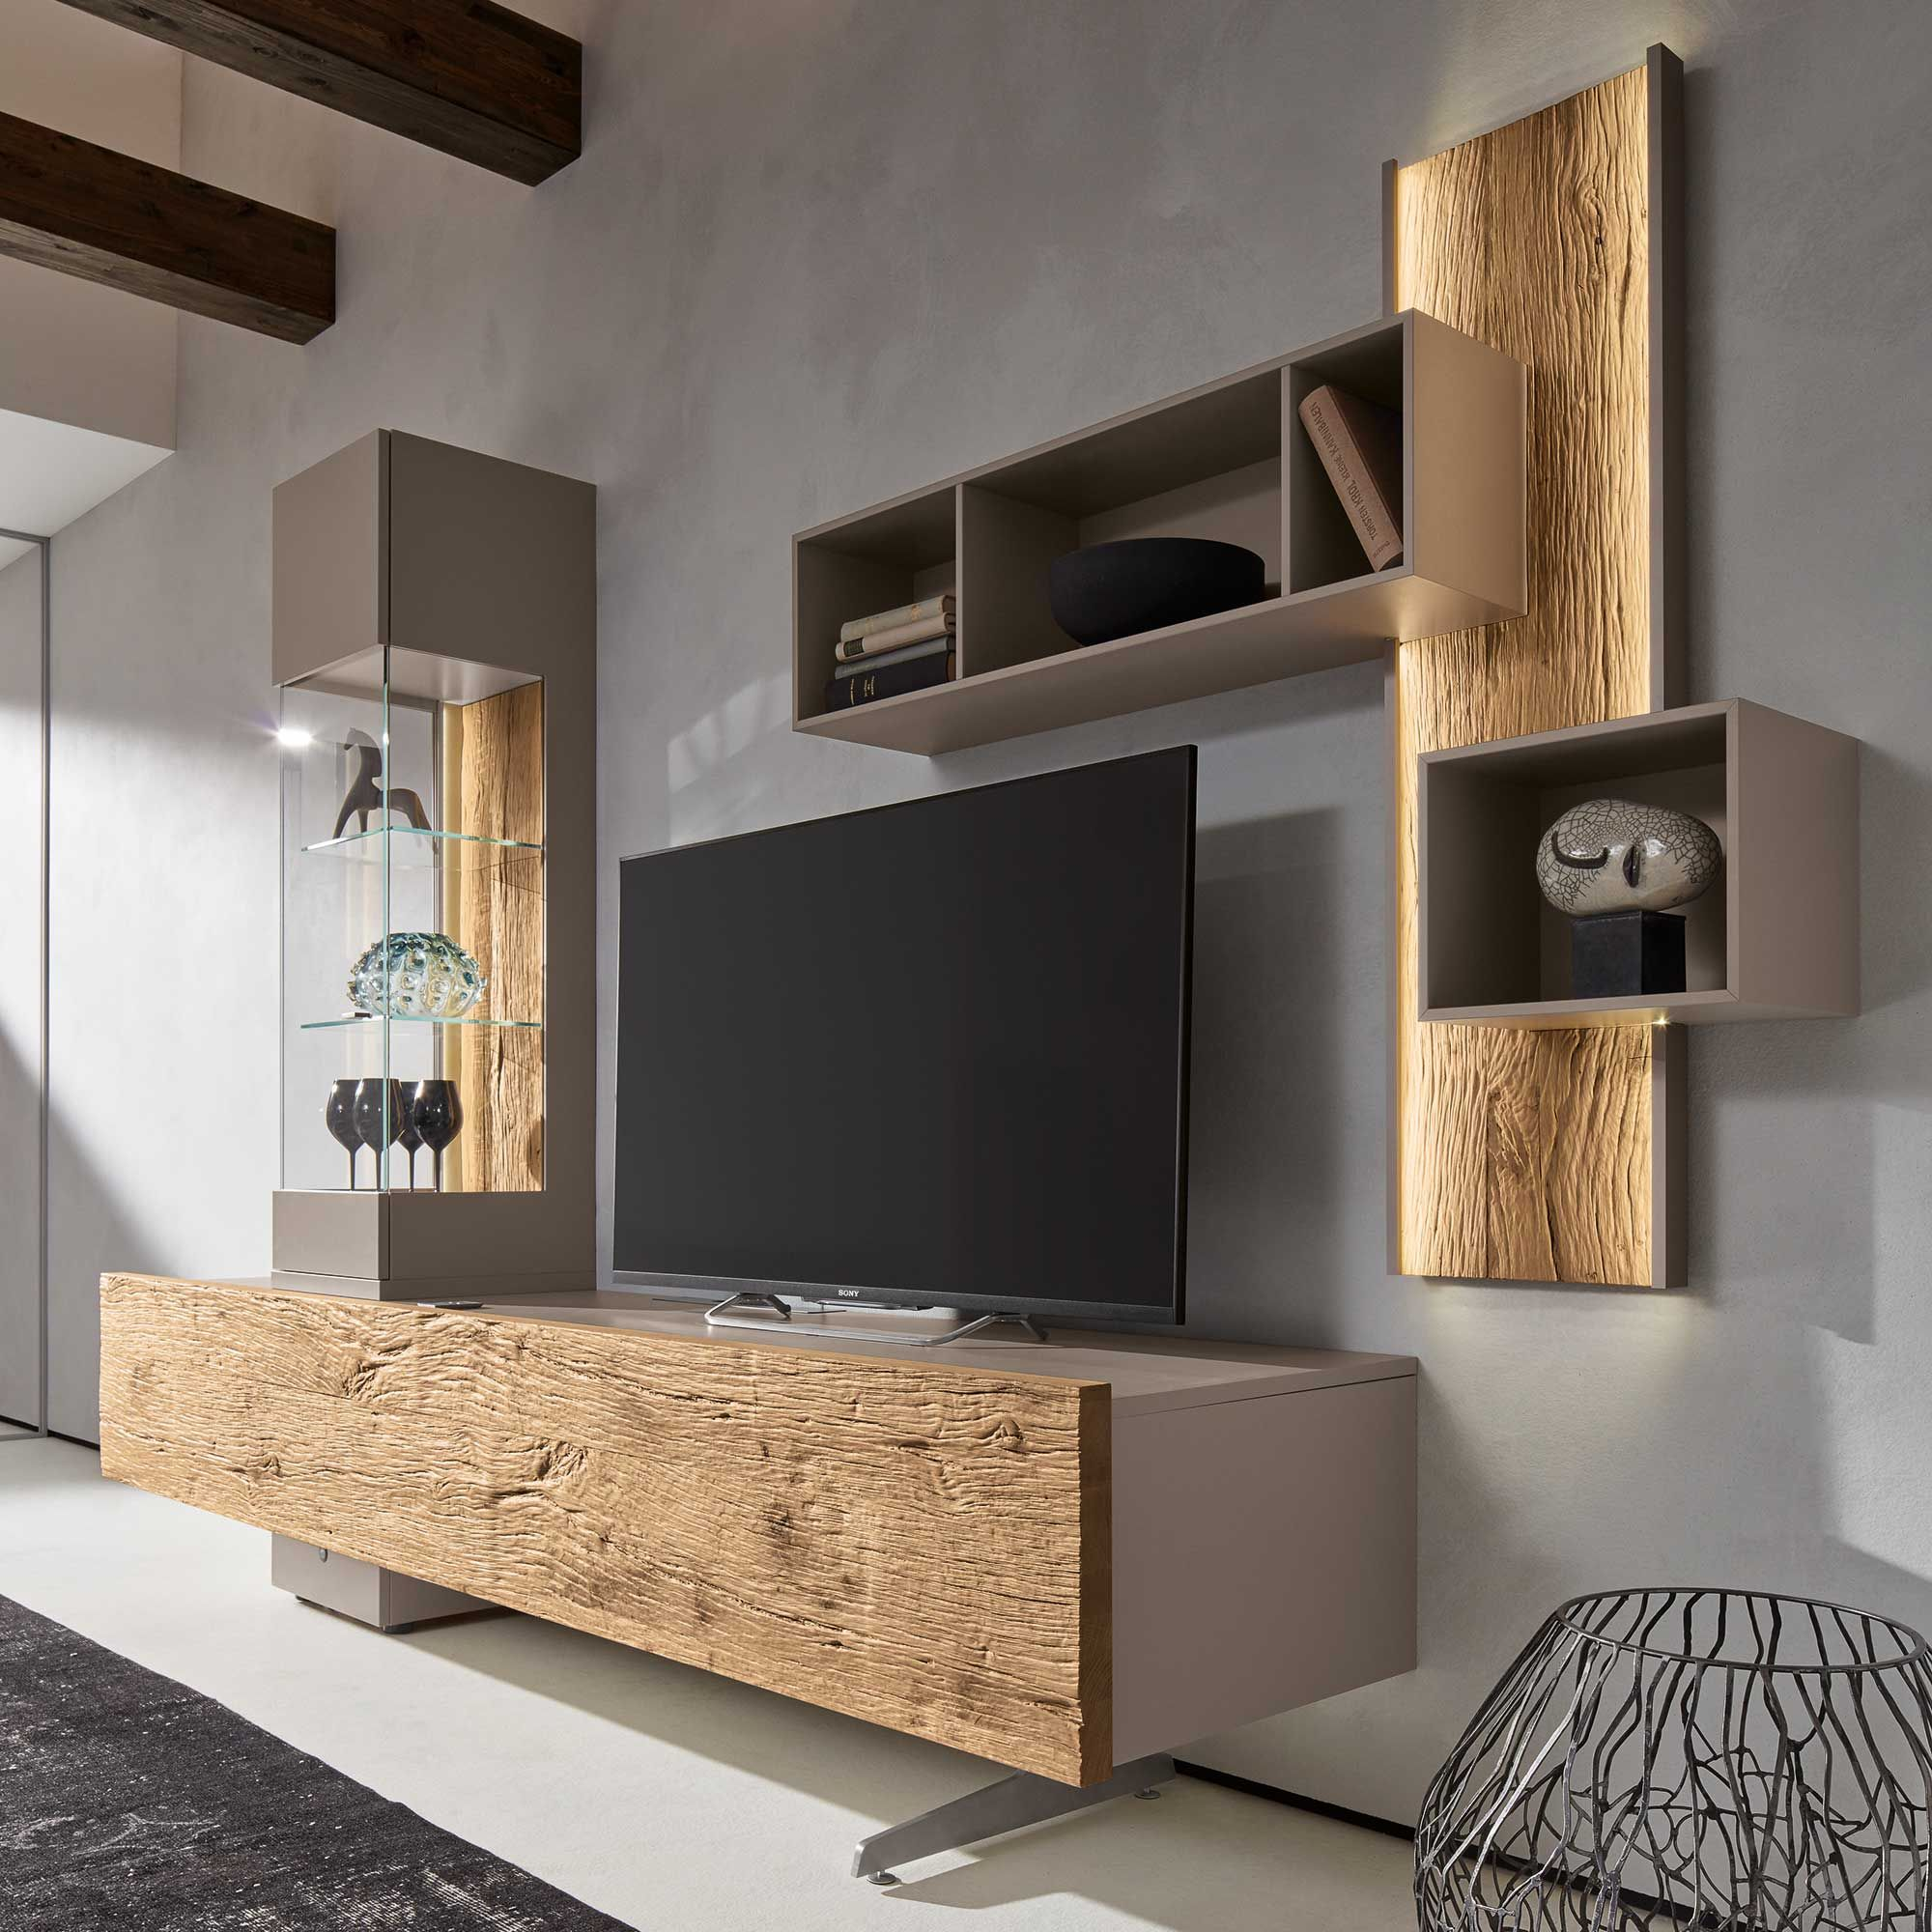 Cabinets For Living Room Designs: Bohle Combination TV Wall Unit, Oak & Glass